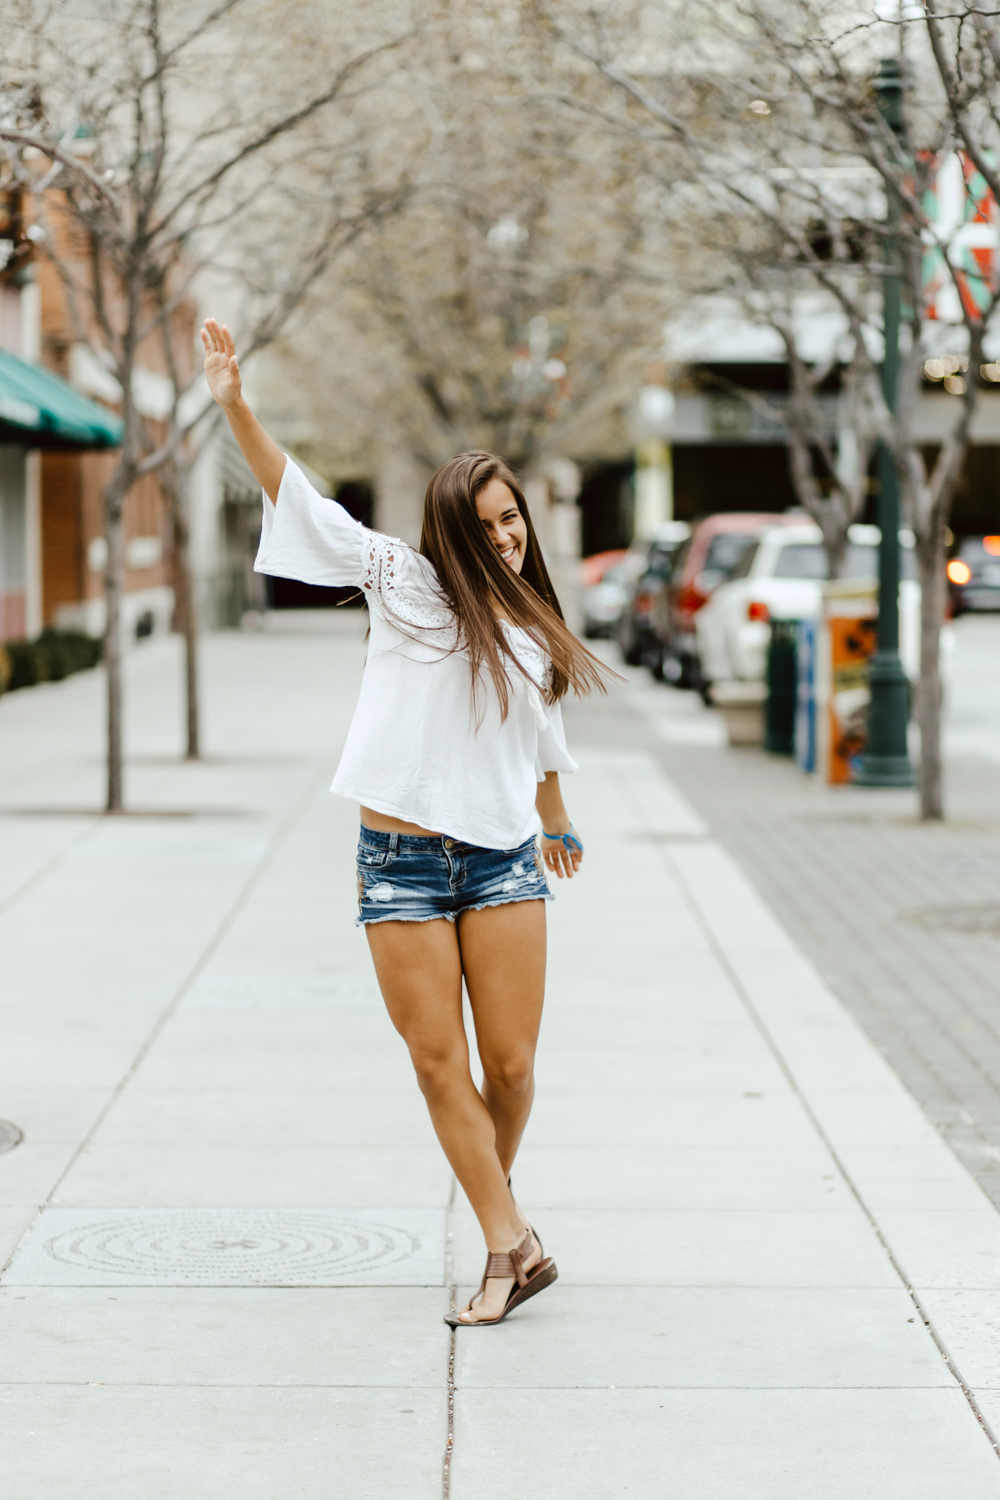 Boise Senior Photographer with Presley in downtown Boise Idaho from Timberline High School.